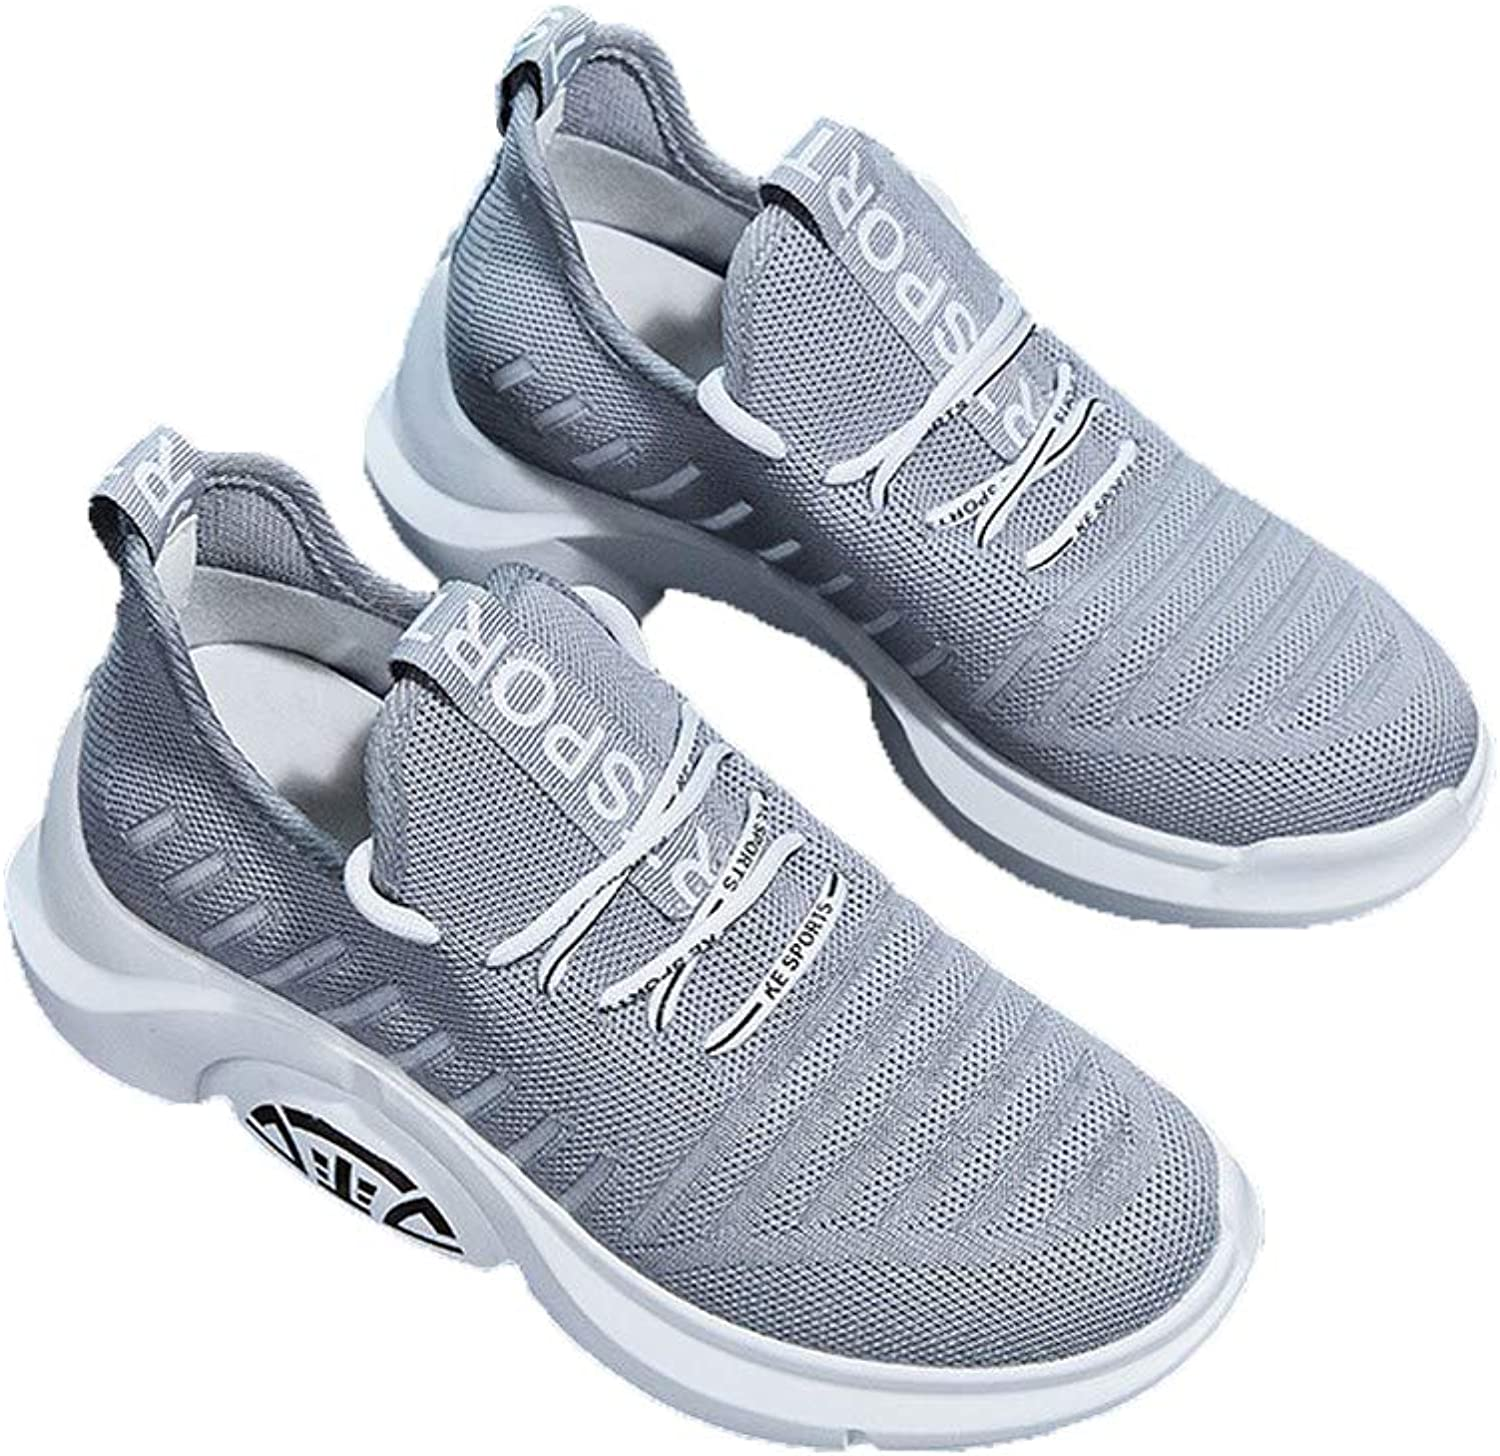 Sunly Women's Slip On Walking shoes Lightweight Casual Running Sneakers